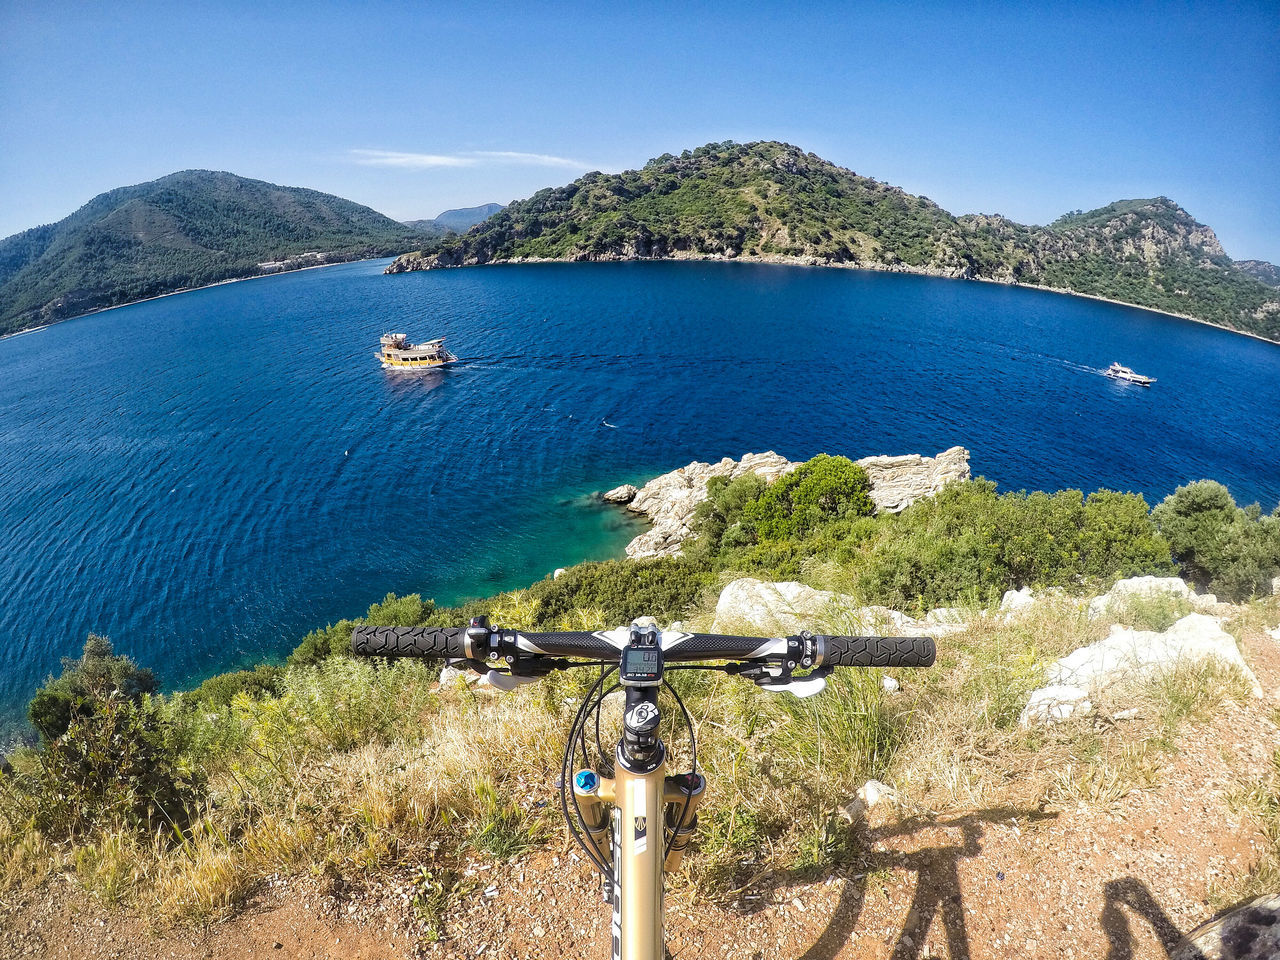 Bike at Marmaris Bicycle Bike Biketour Bisiklet Cycling Cyclocross Fahrrad Holiday Island Lykia Marmaris Mediterranean  Mountainbike MTB Mugla Outdoor Photography Outdoors Roadtrip Sea Sea And Sky Shimano Turkey Türkiye